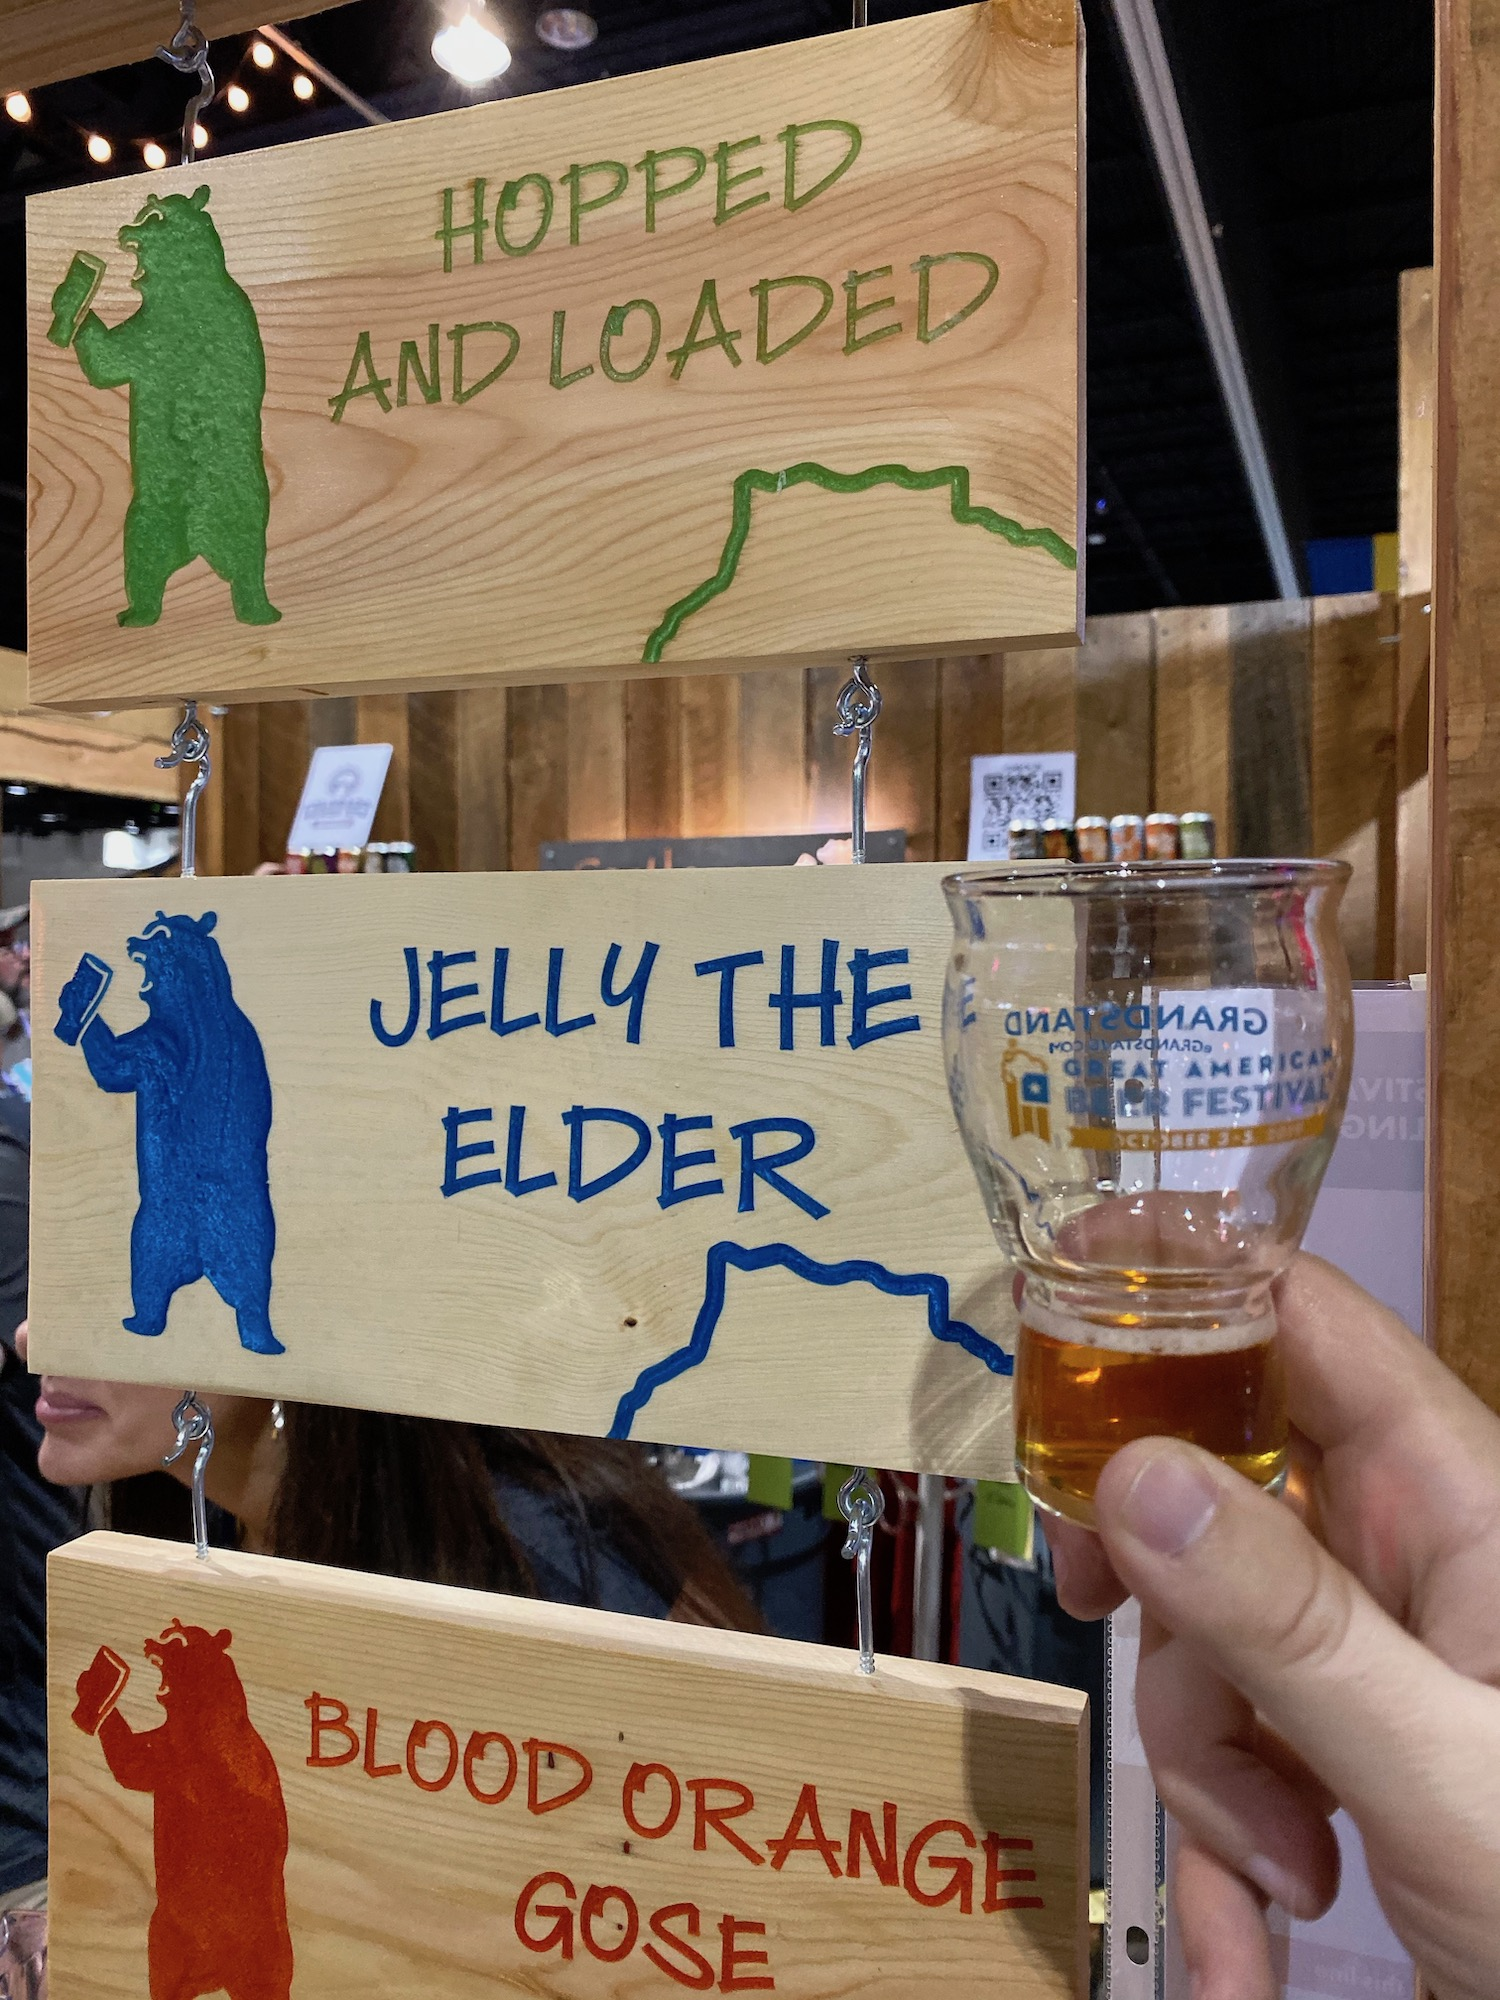 Jelly the Elder